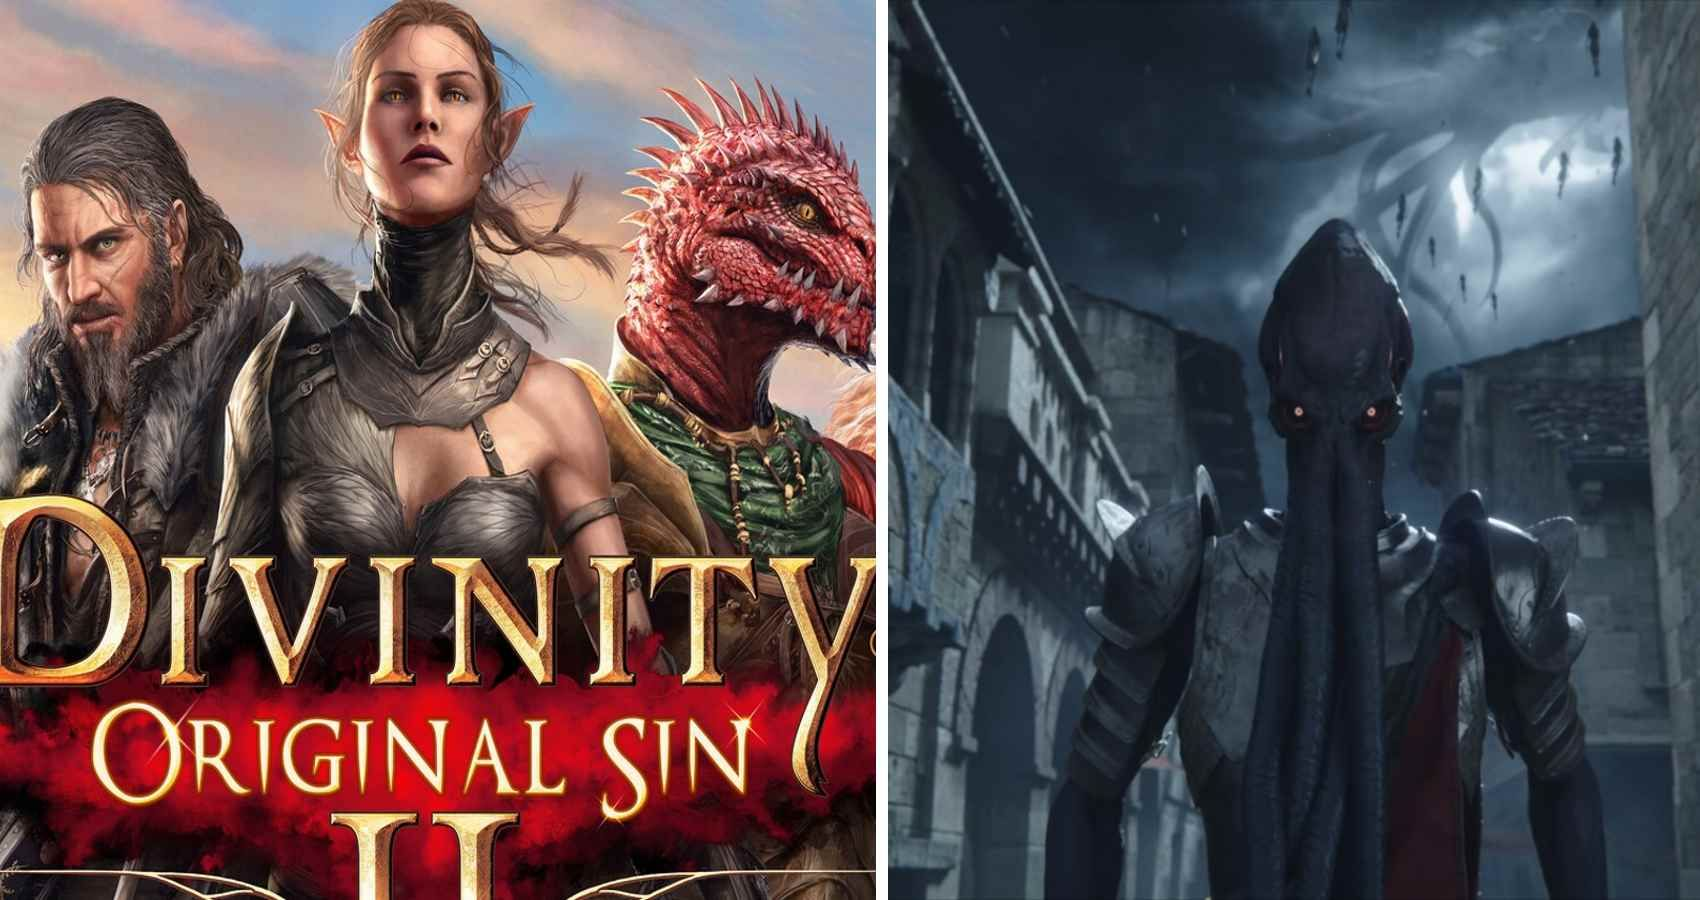 Divinity original sin enhanced edition character builds